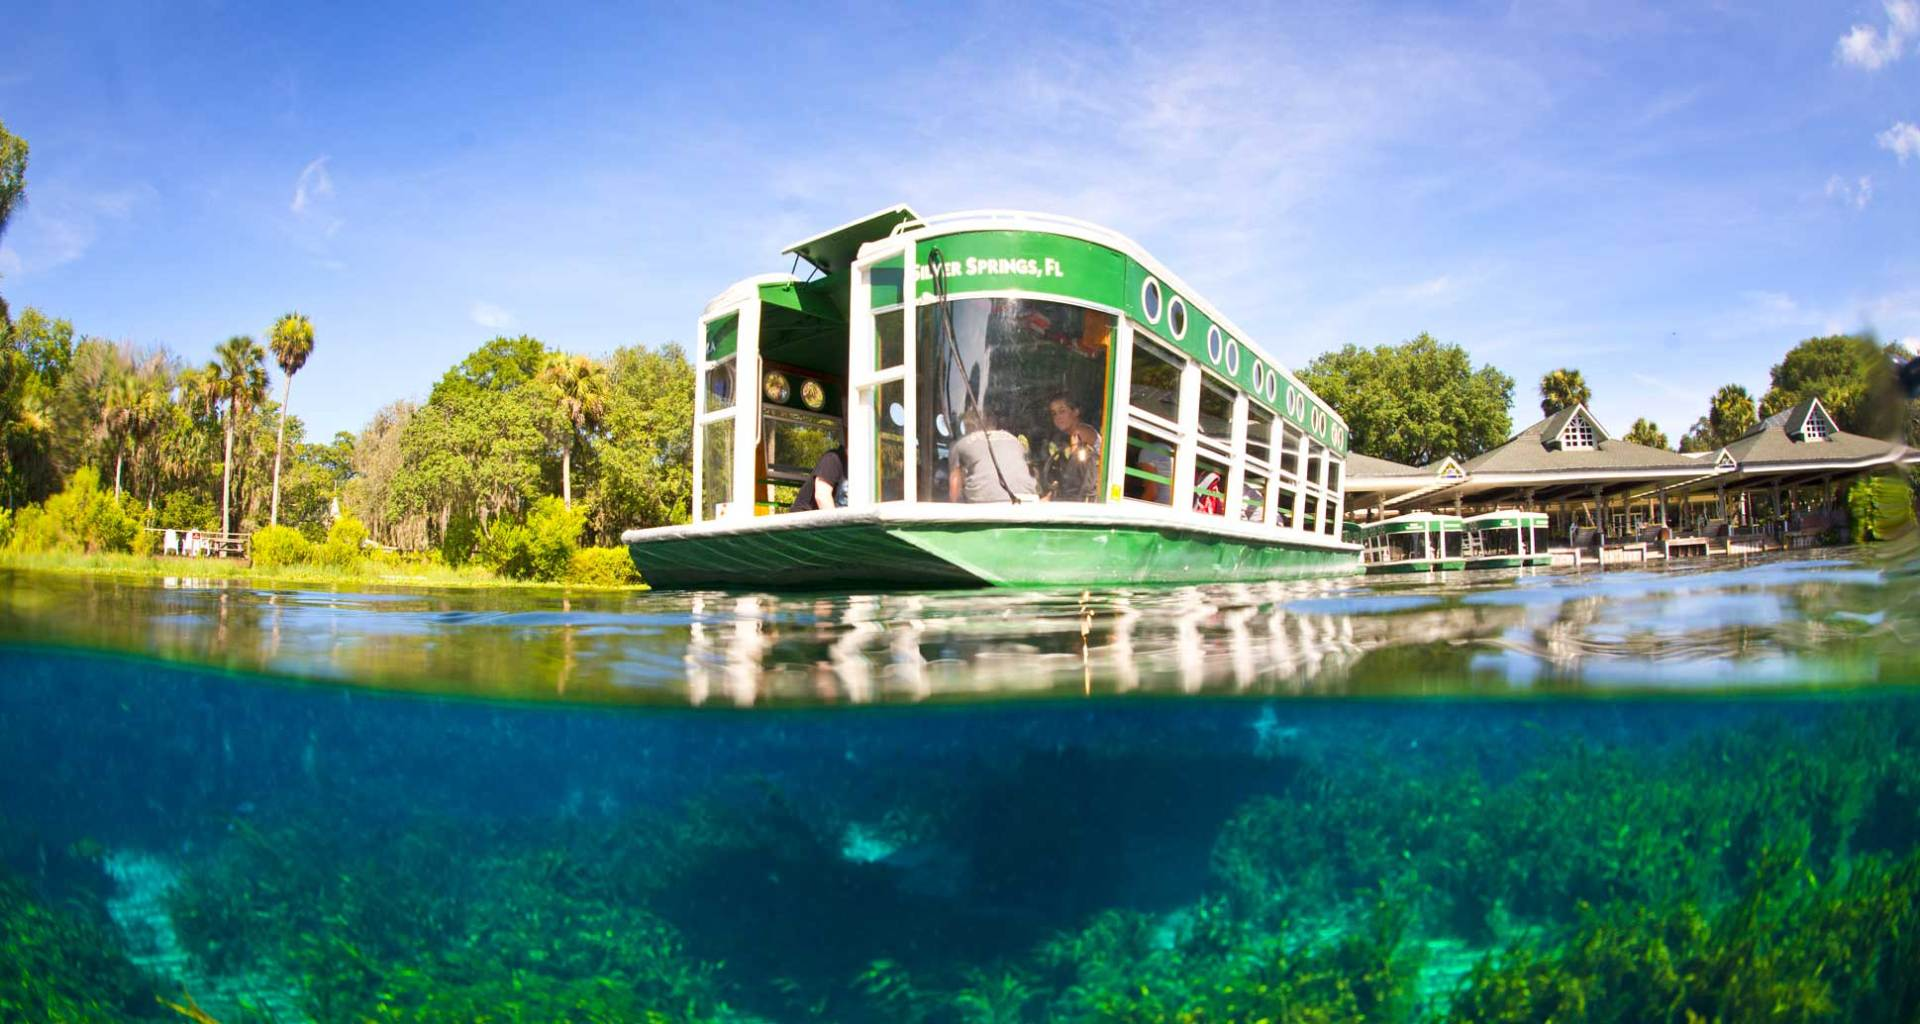 Glass bottom boat on river, with underwater view.